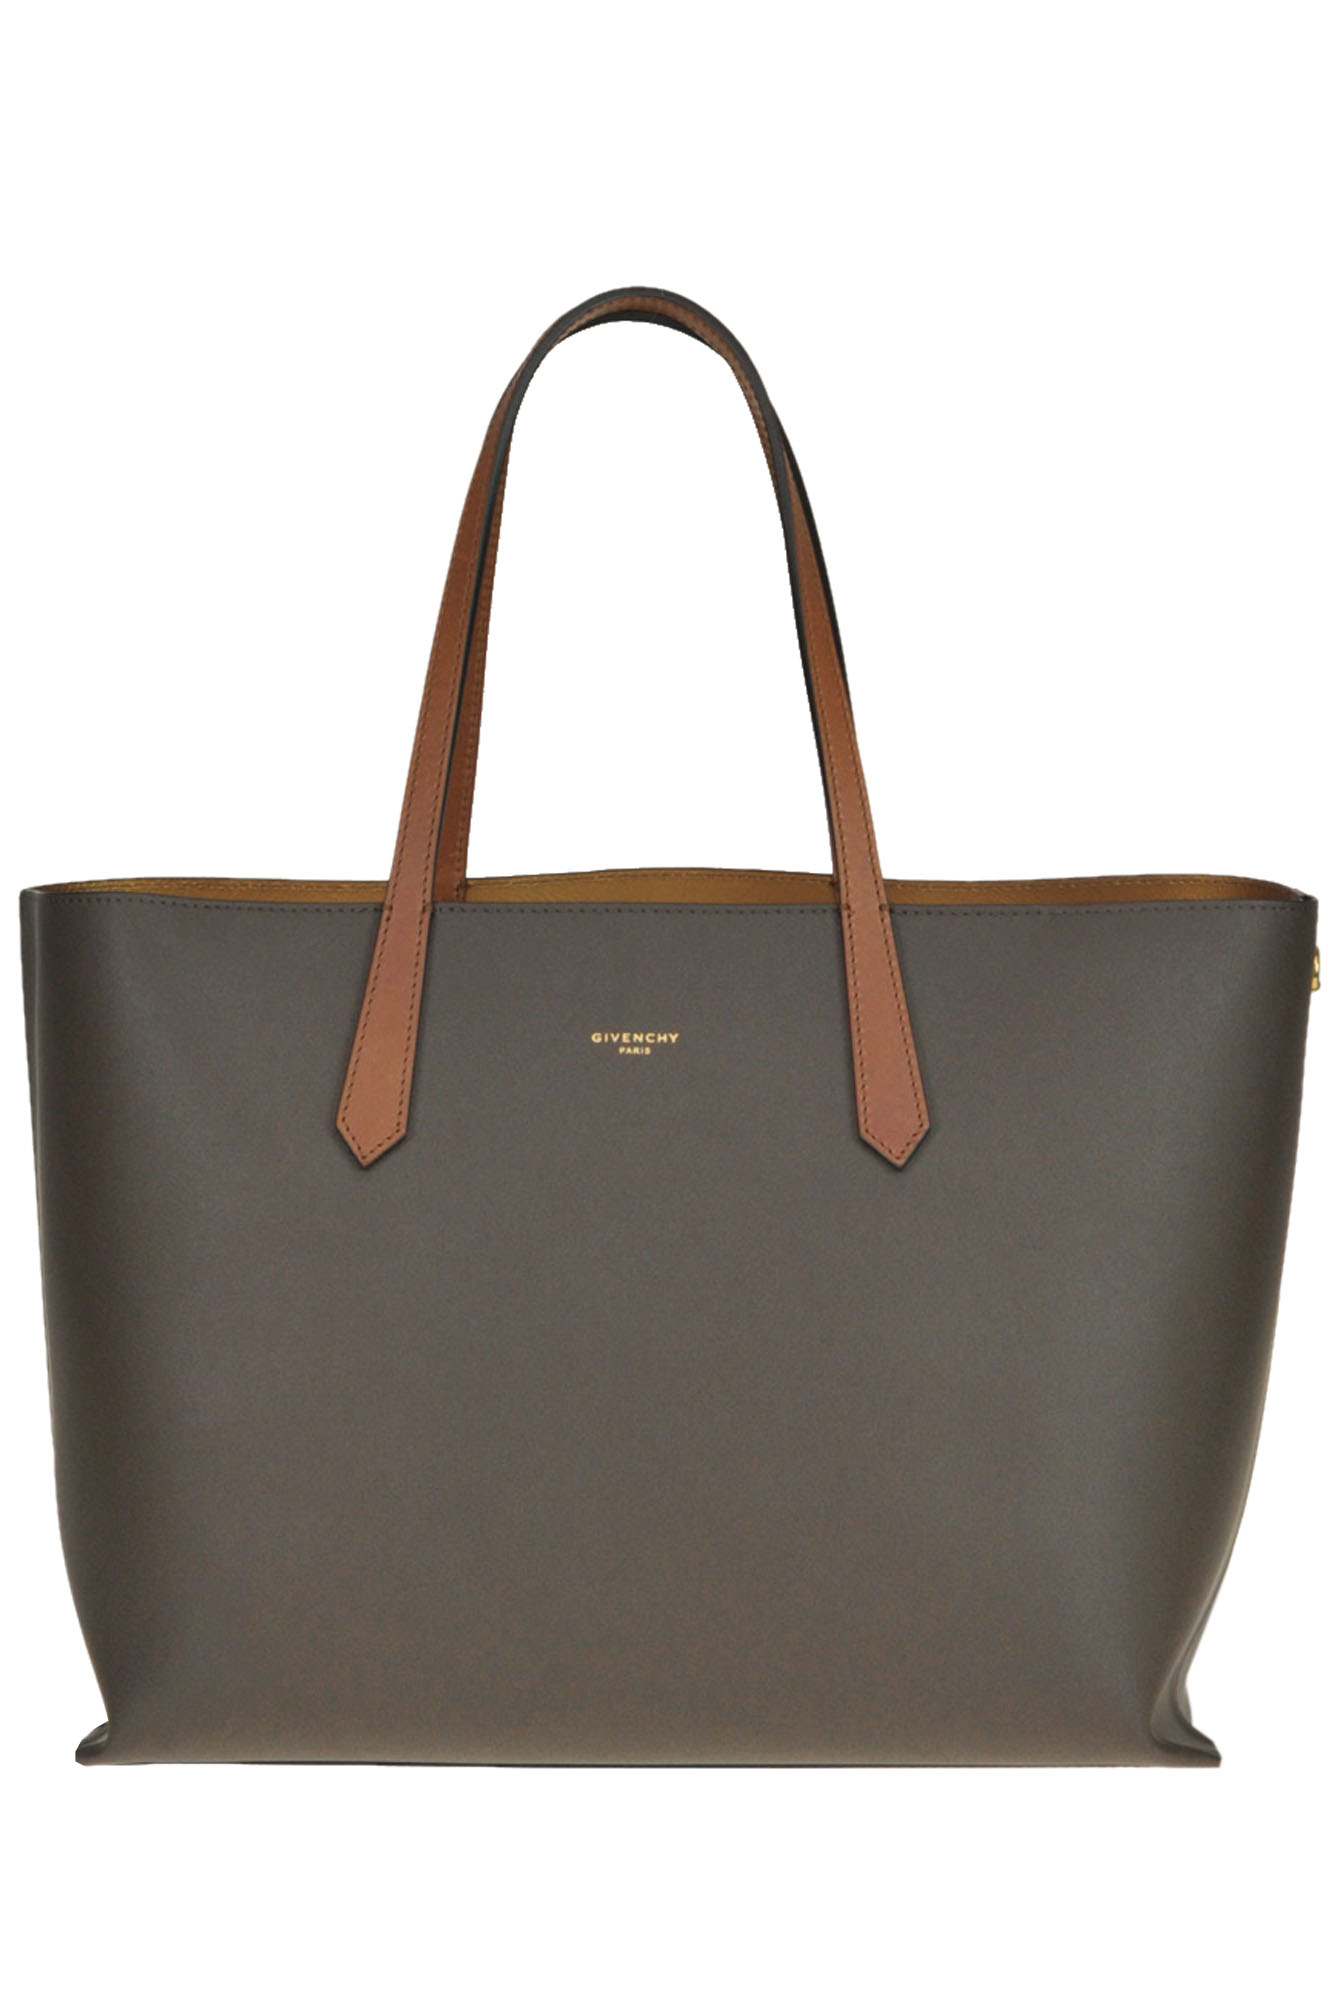 Givenchy Gv Leather Shopping Bag In Dark Brown